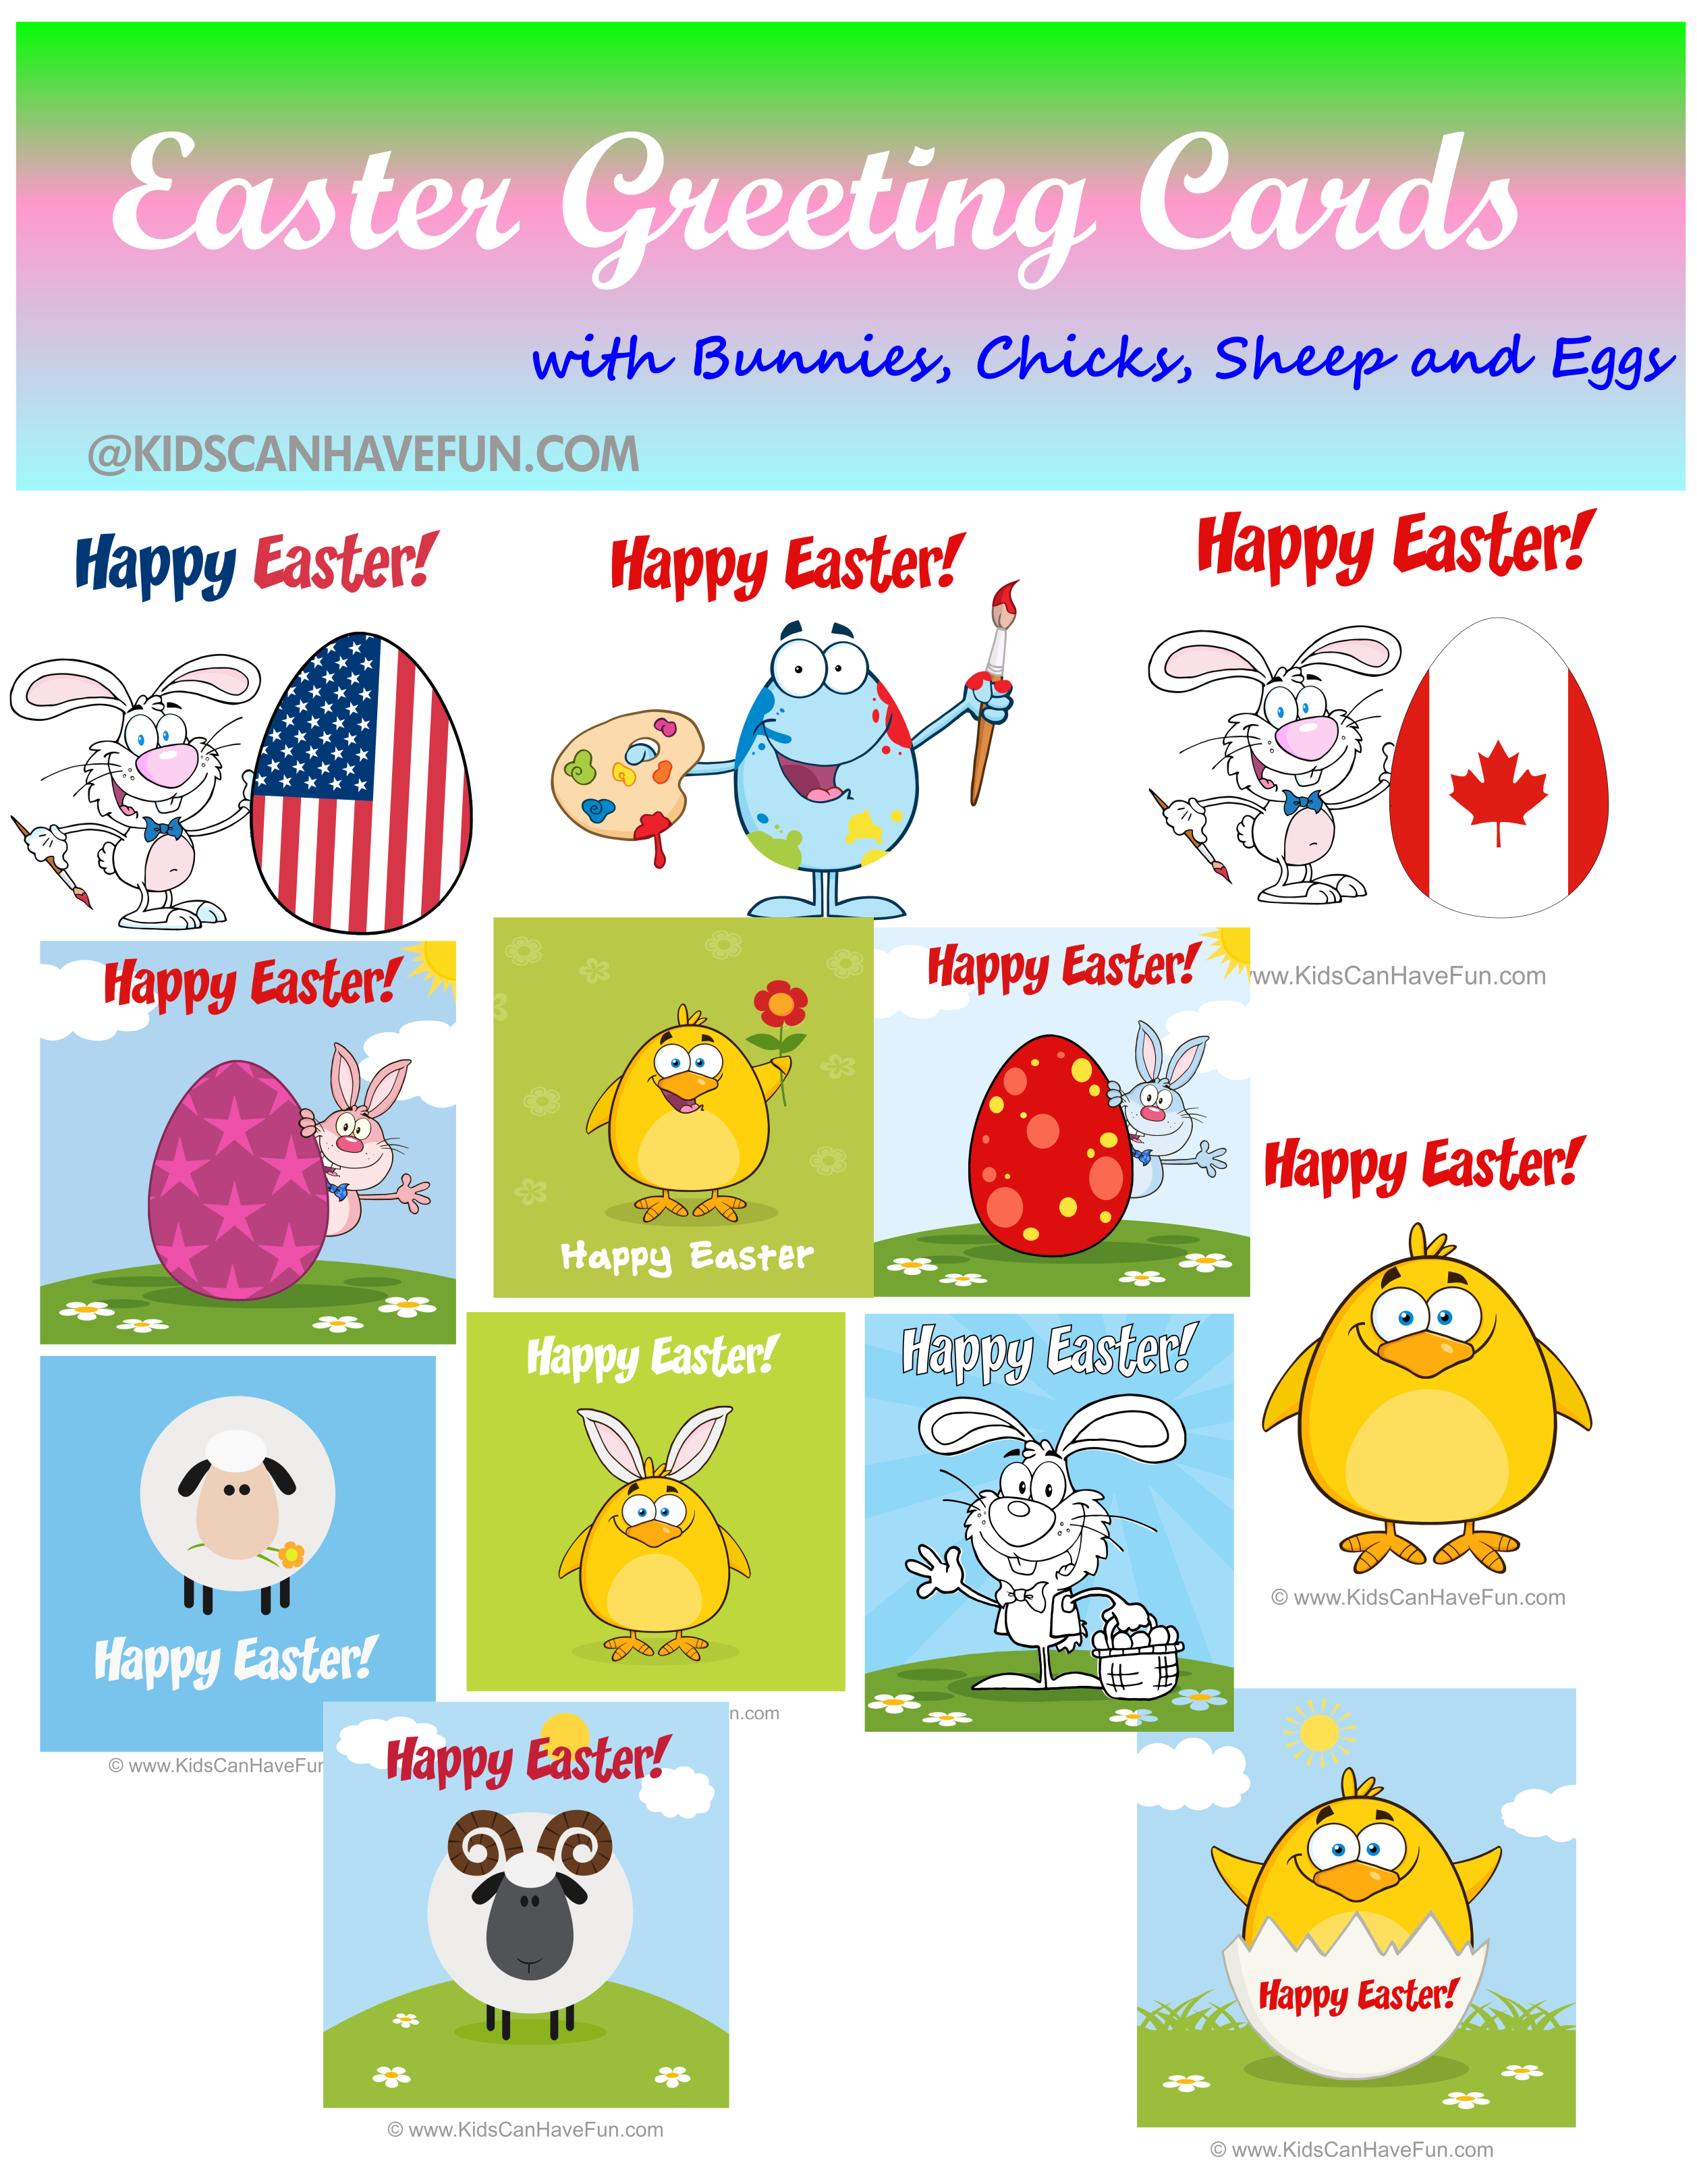 image relating to Easter Cards Printable known as Printable Easter Playing cards, Easter Greetings, Bunnies, Easter Eggs